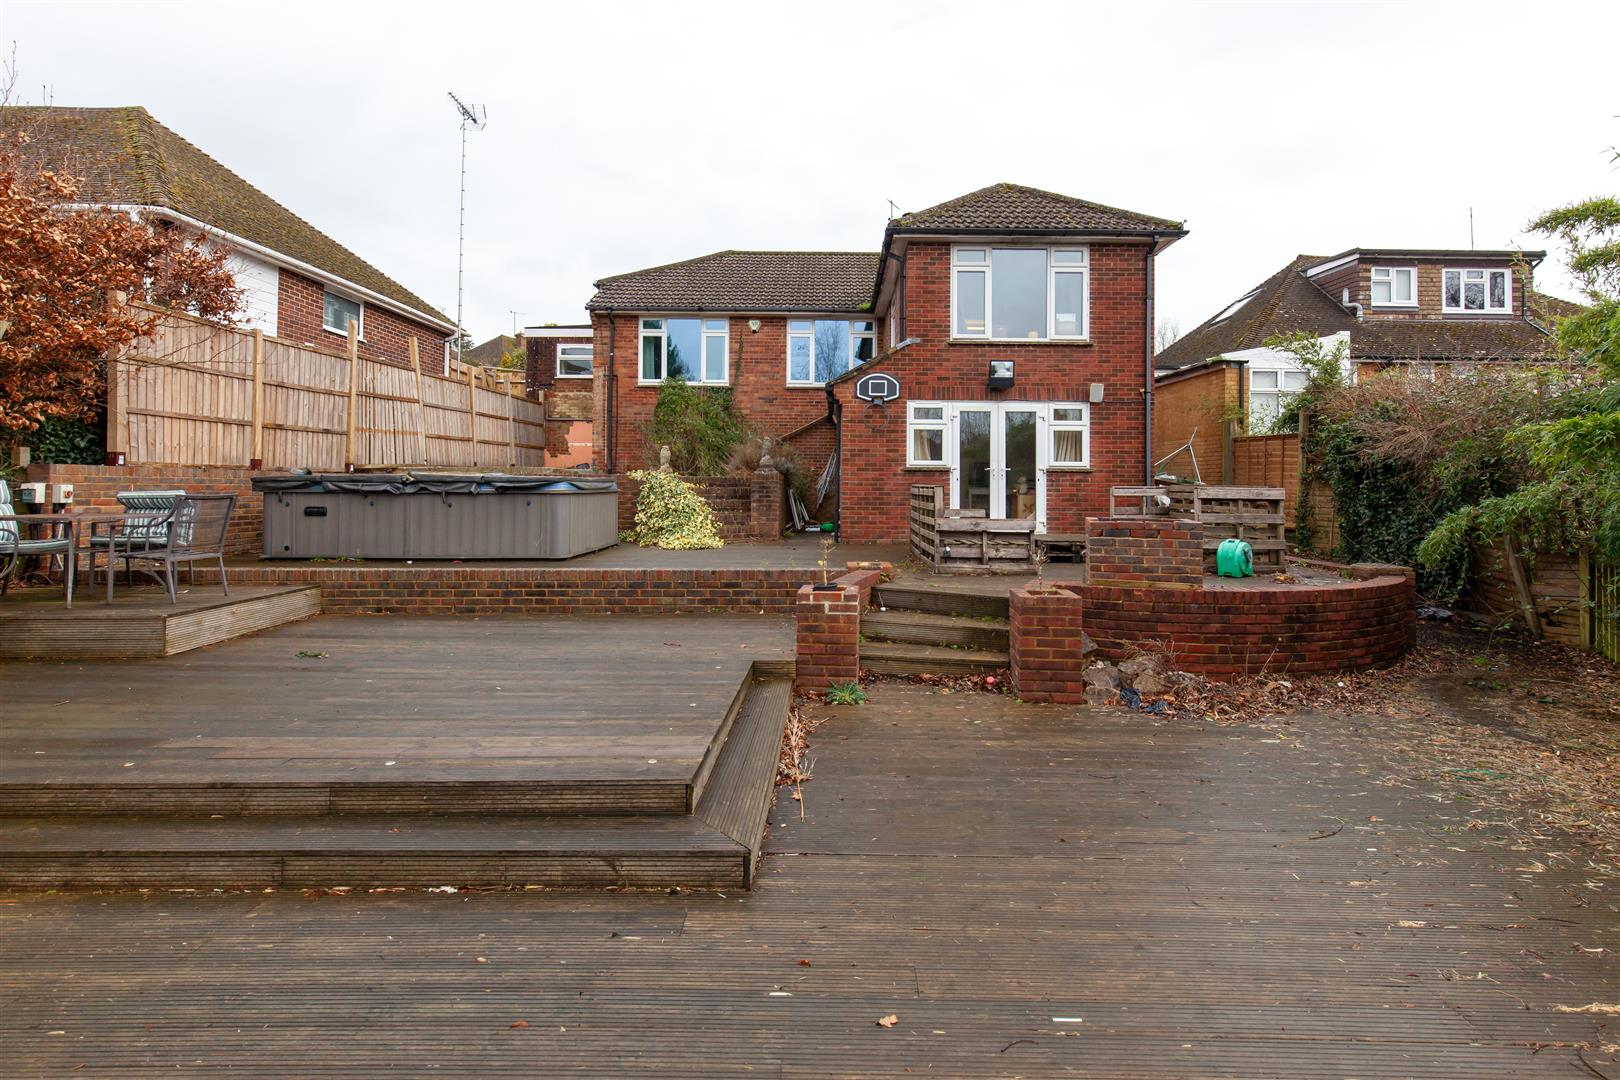 4 bed detached bungalow for sale in Gorselands, Battle 28